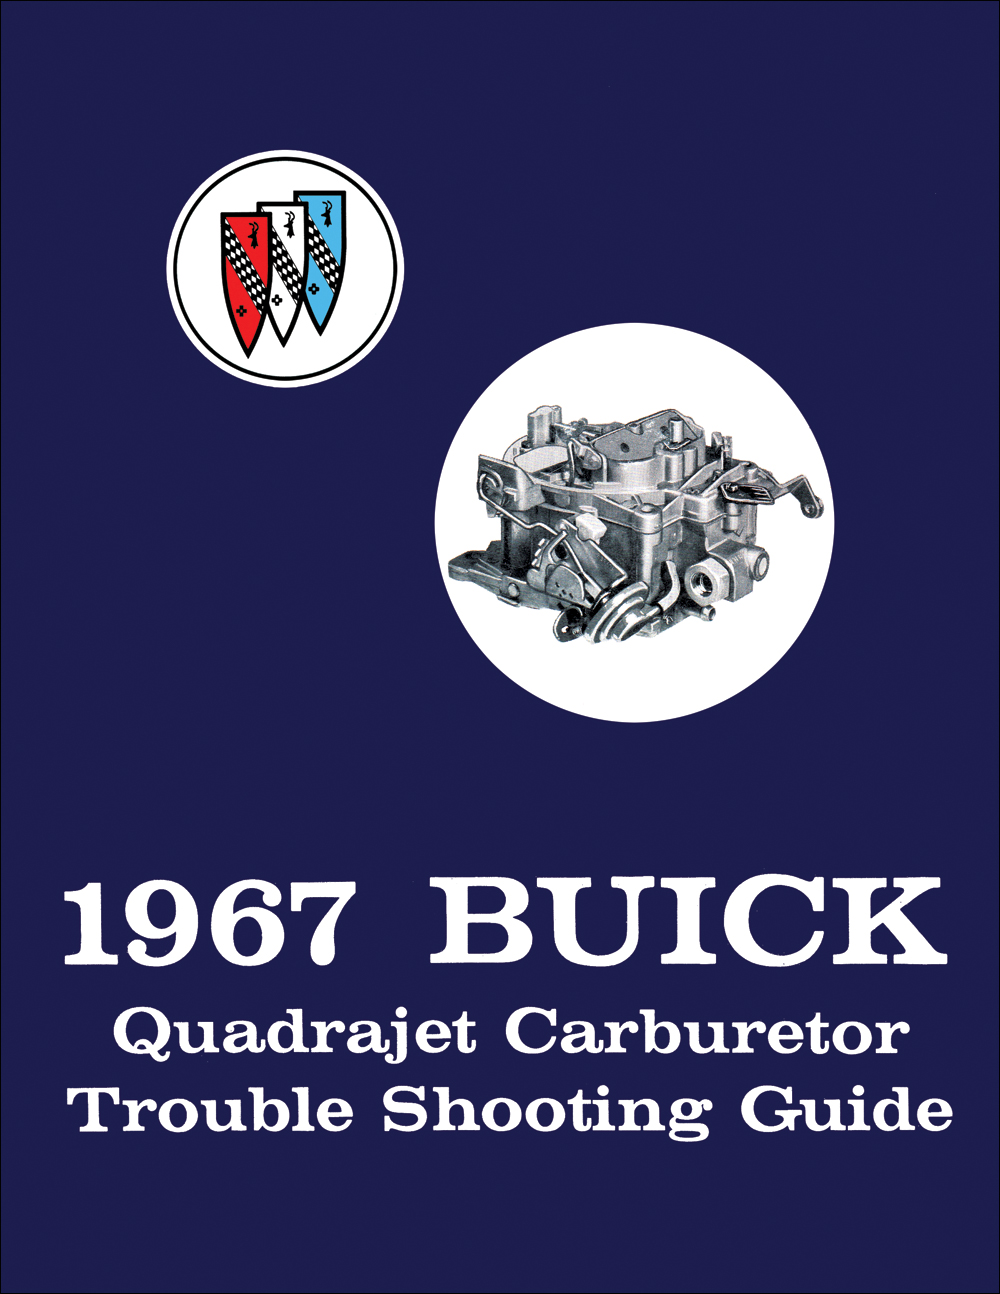 1967 Buick Quadrajet Carburetor Trouble Shooting Manual Reprint